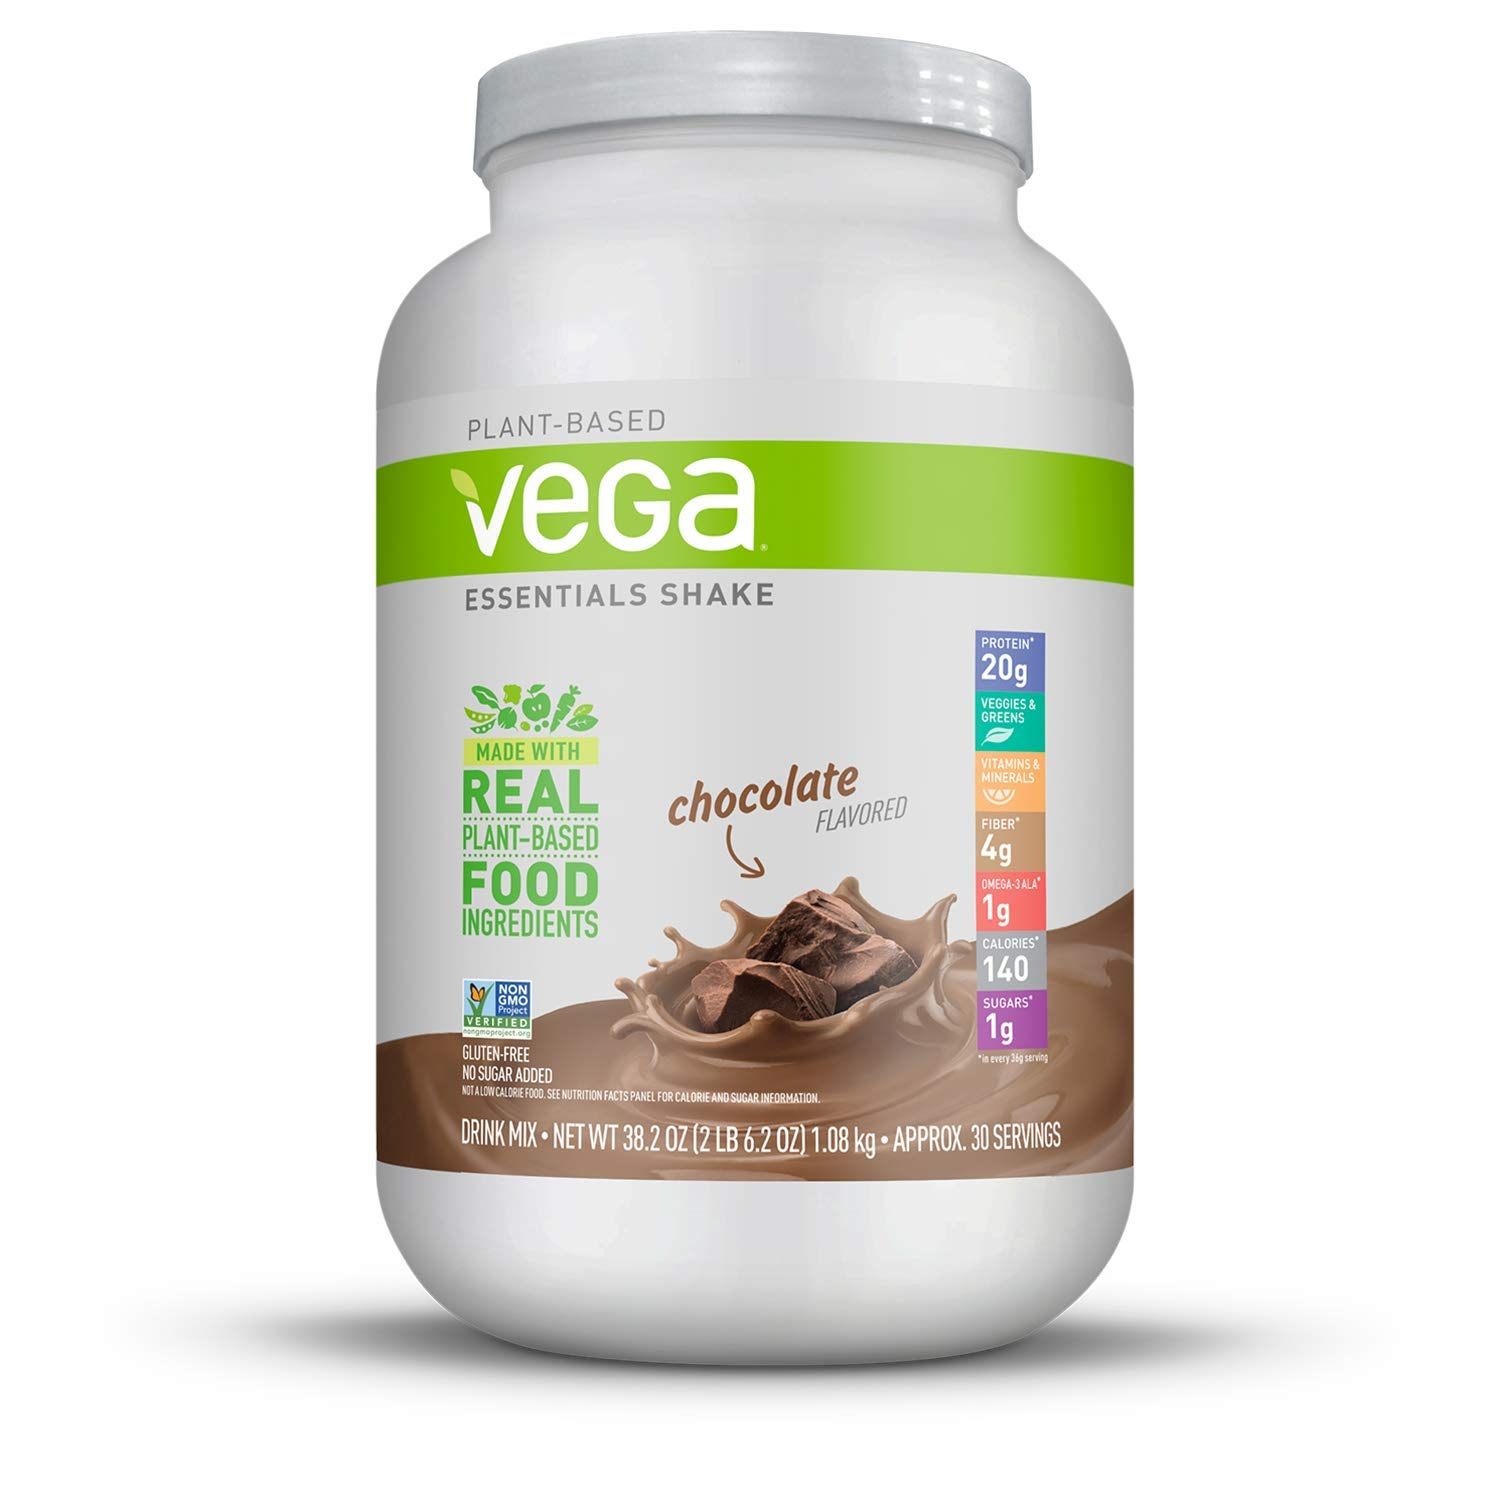 Vega Essentials Shake Chocolate 30 Servings, 38.1 Ounce – Plant Based Vegan Protein Powder, Non Dairy, Keto-Friendly, Gluten Free, Smooth and Creamy, Non GMO